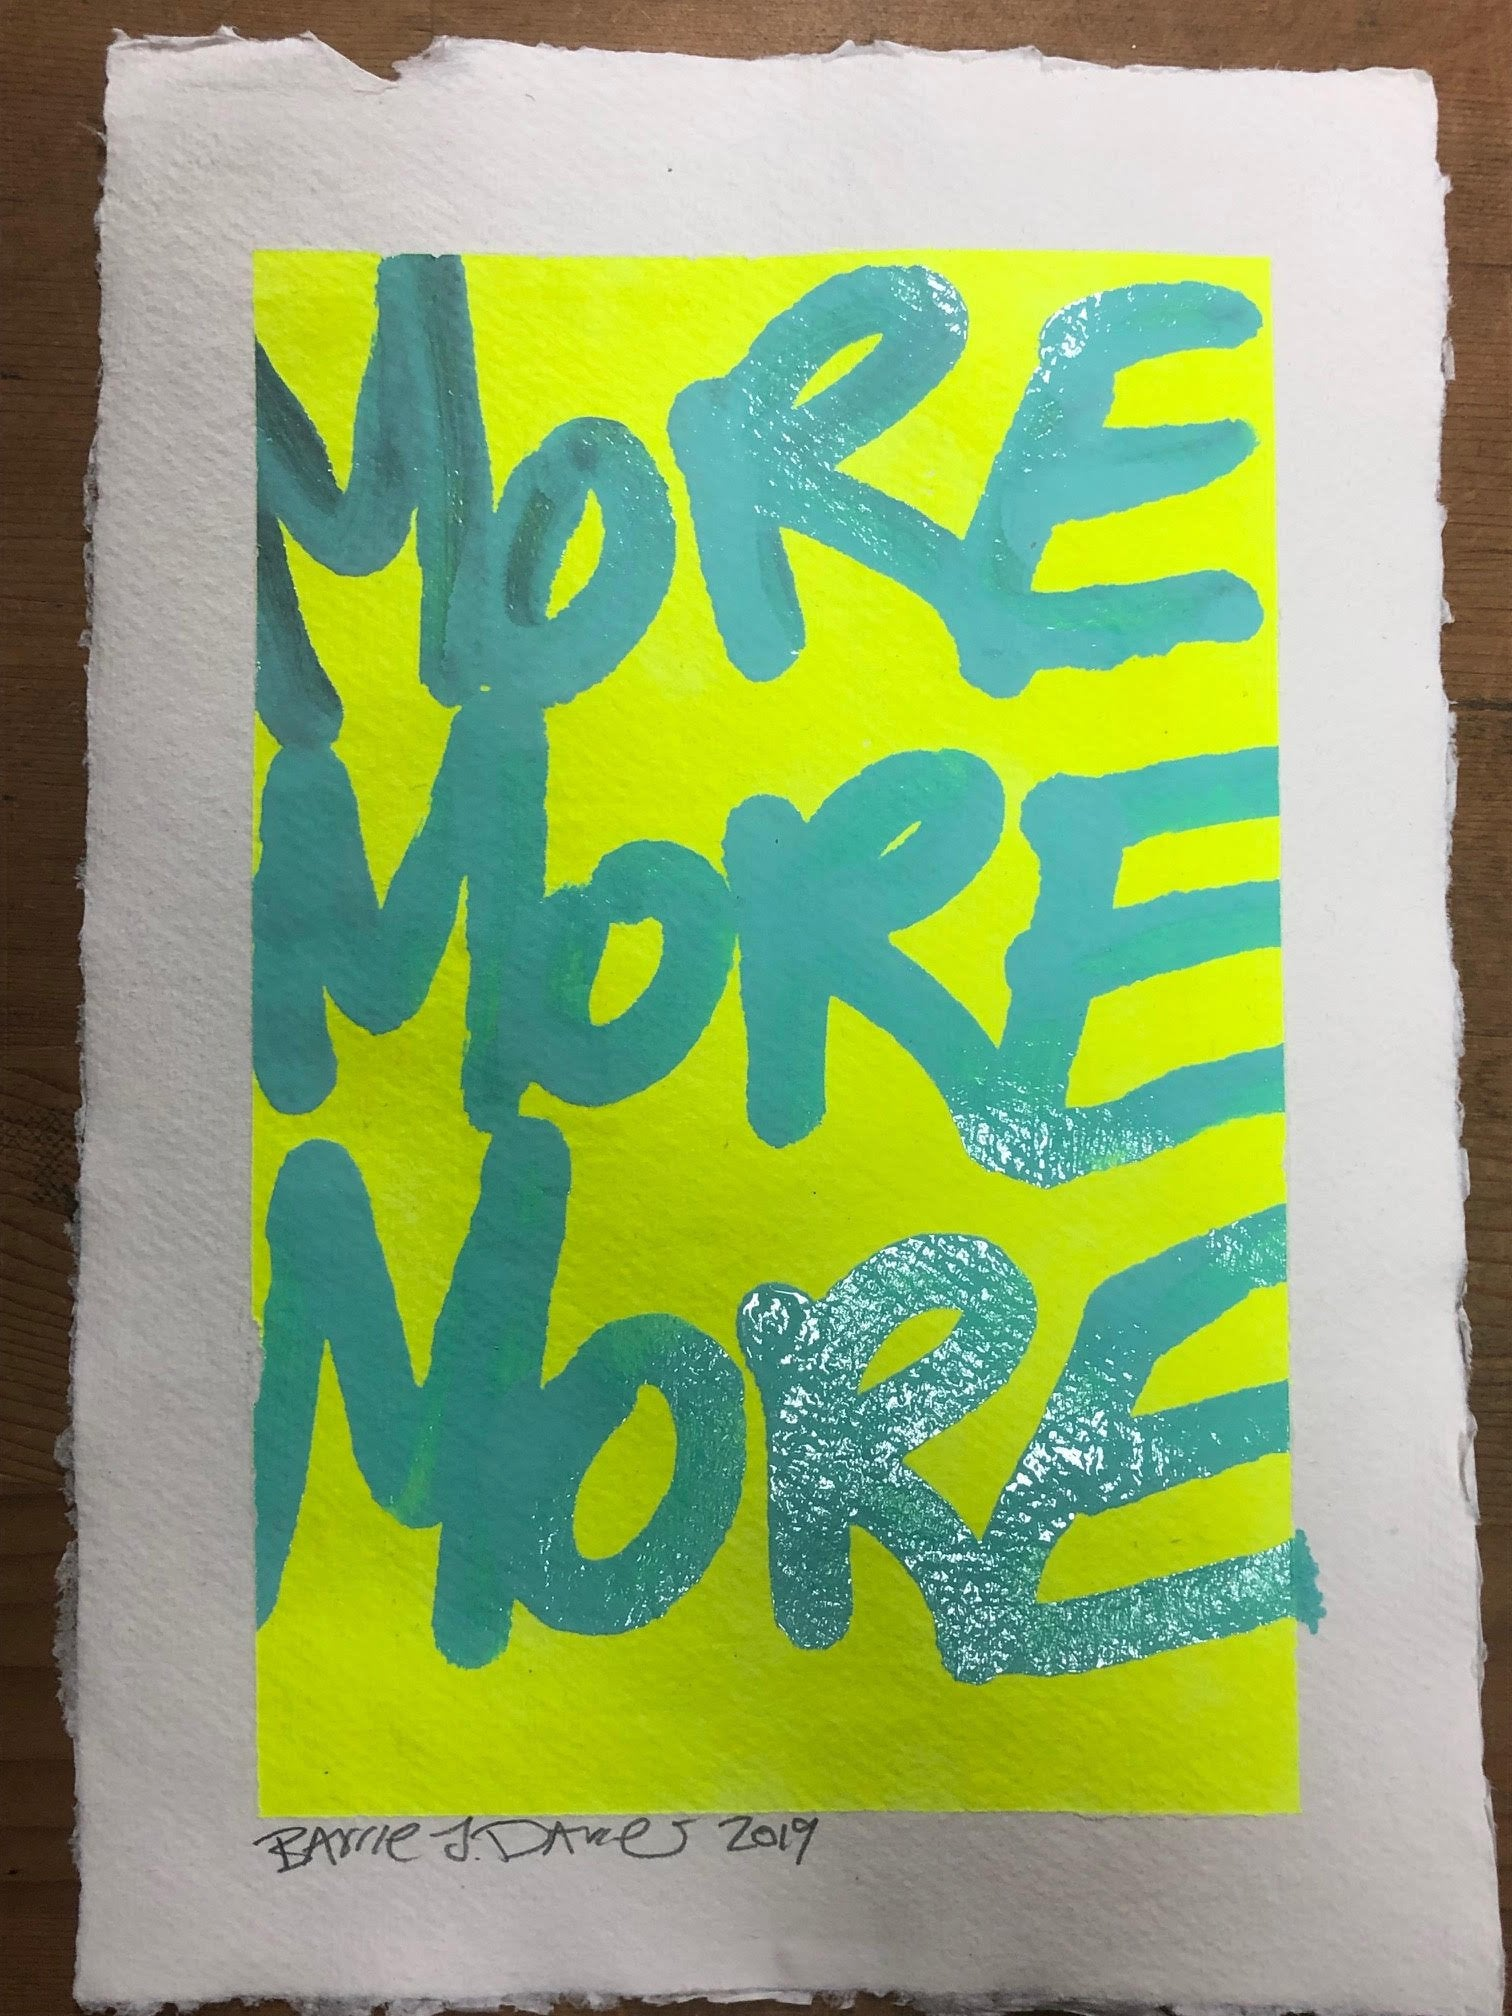 More More More by Barrie J Davies 2019, paint on A4 Khadi White Cotton Paper unframed, with deckled raw edges. Barrie J Davies is an Artist - Pop Art and Street art inspired Artist based in Brighton England UK - Pop Art Paintings, Street Art Prints & Editions available.